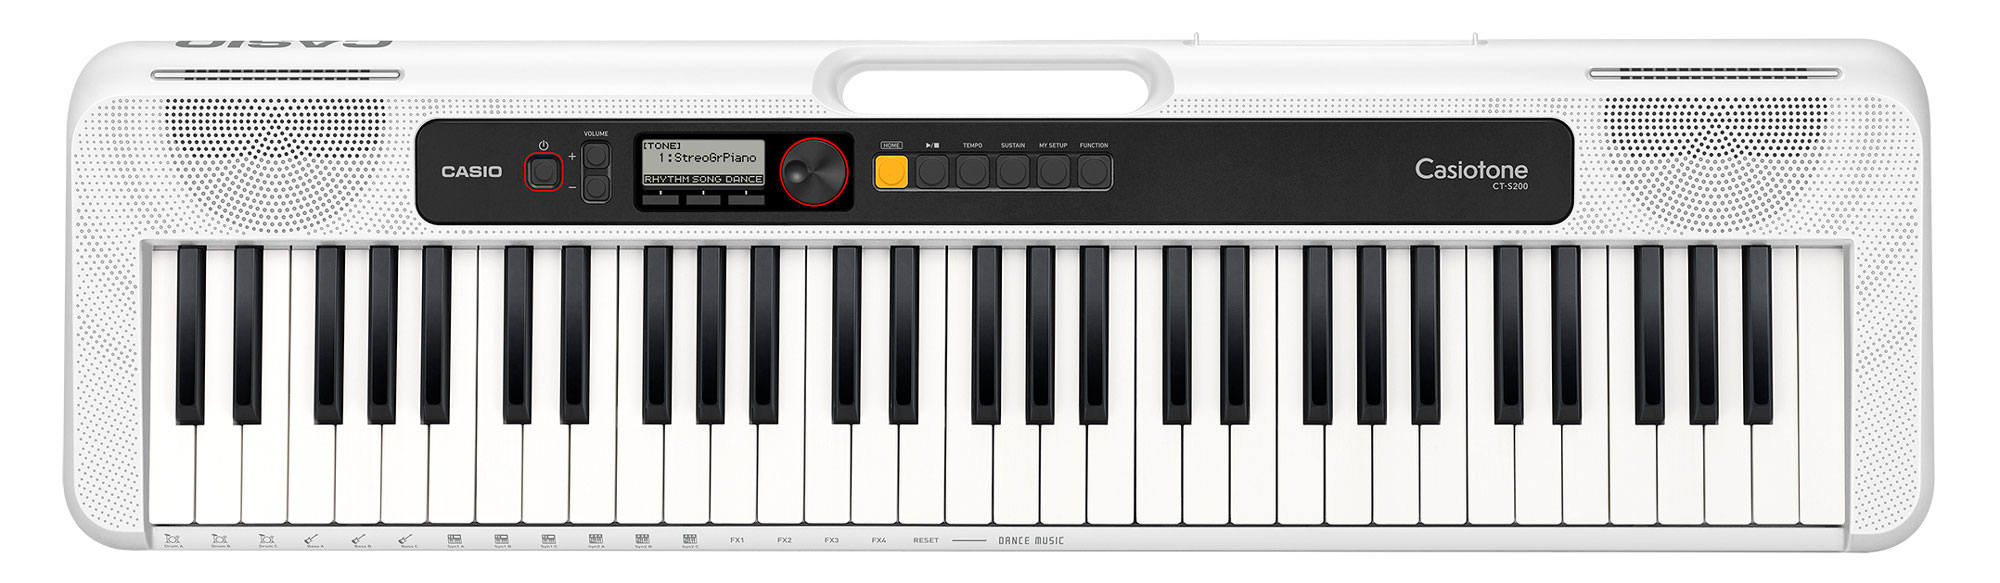 Homekeyboards - Casio CT S200 WE Keyboard Weiß - Onlineshop Musikhaus Kirstein